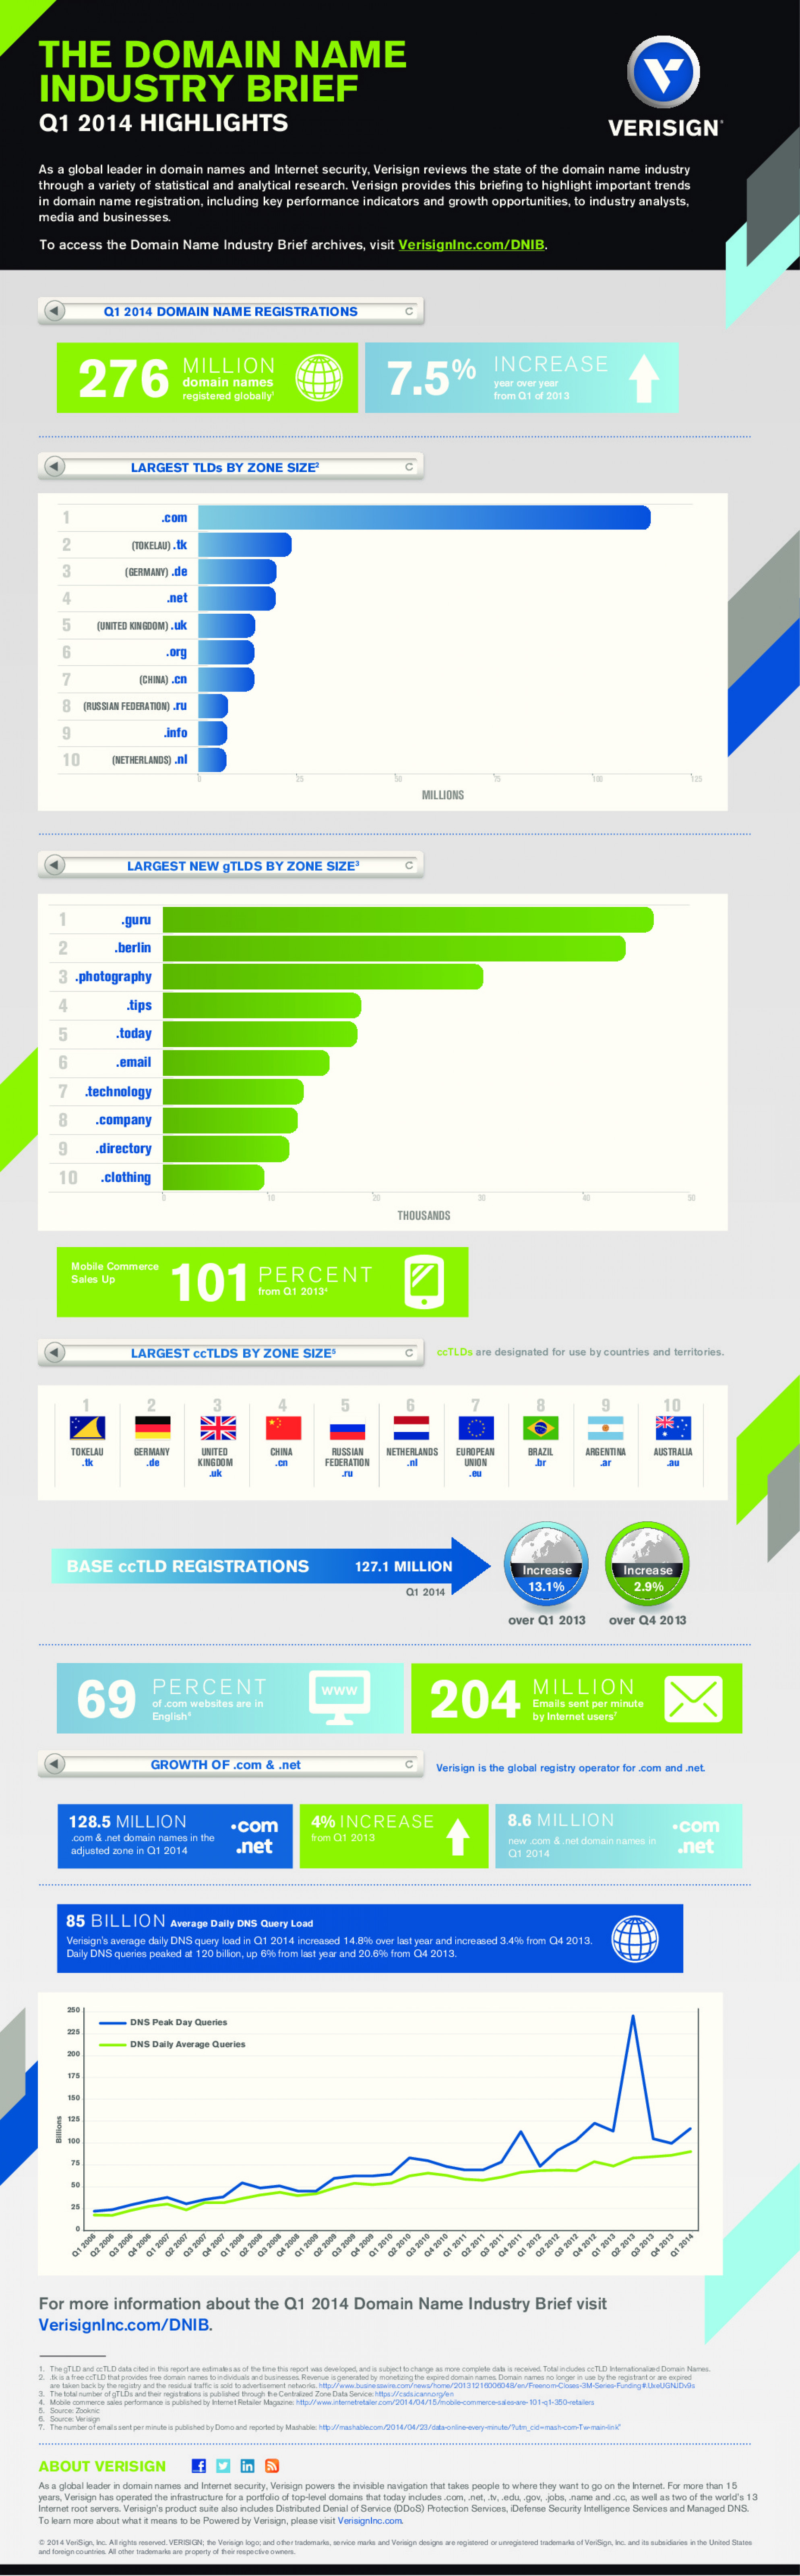 Domain Name Industry Brief: Q1/2014